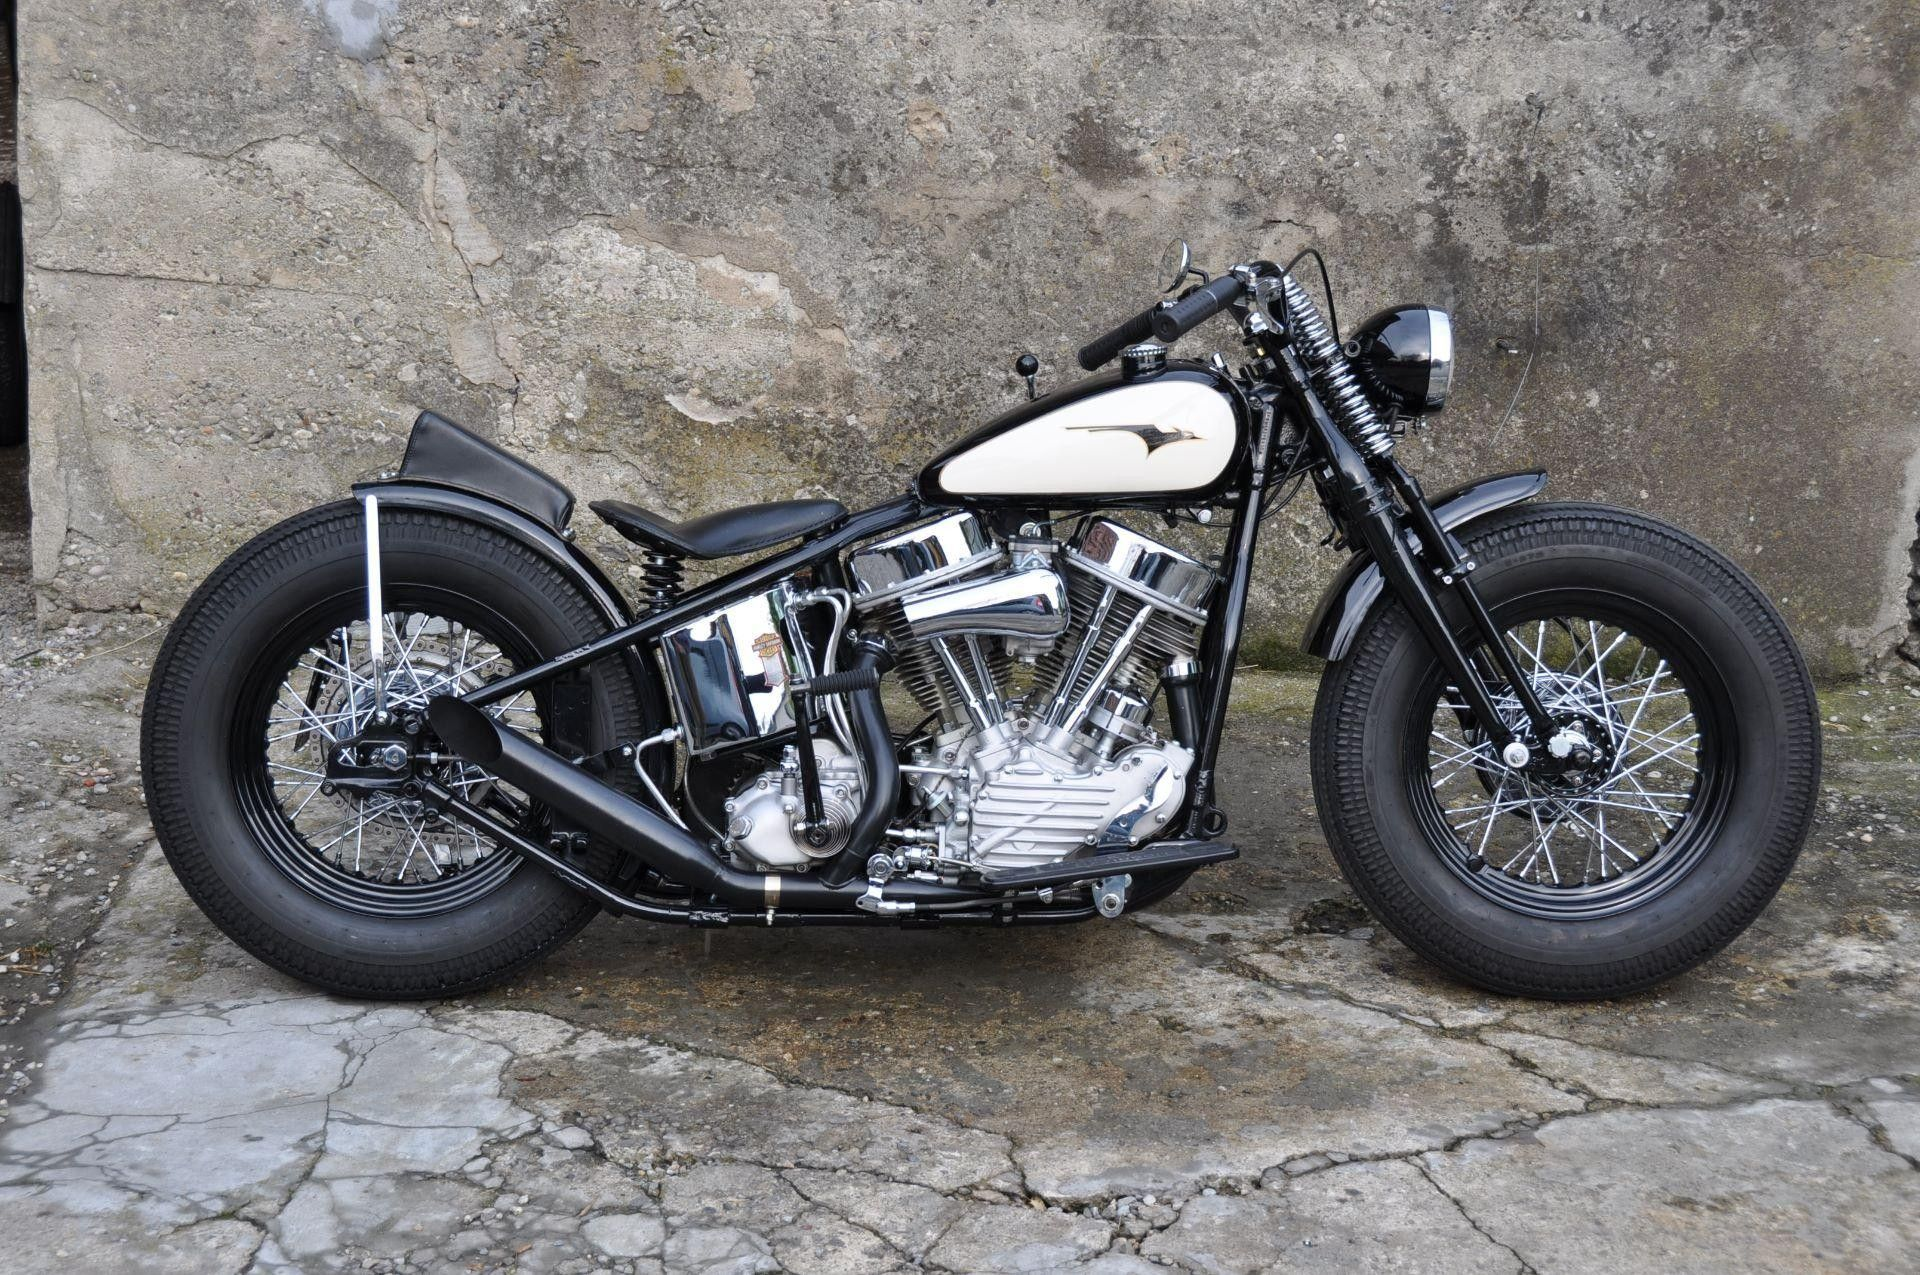 motorrad oldtimer kaufen harley davidson panhead bobber 1207 ccm baujahr 1948 professionell. Black Bedroom Furniture Sets. Home Design Ideas